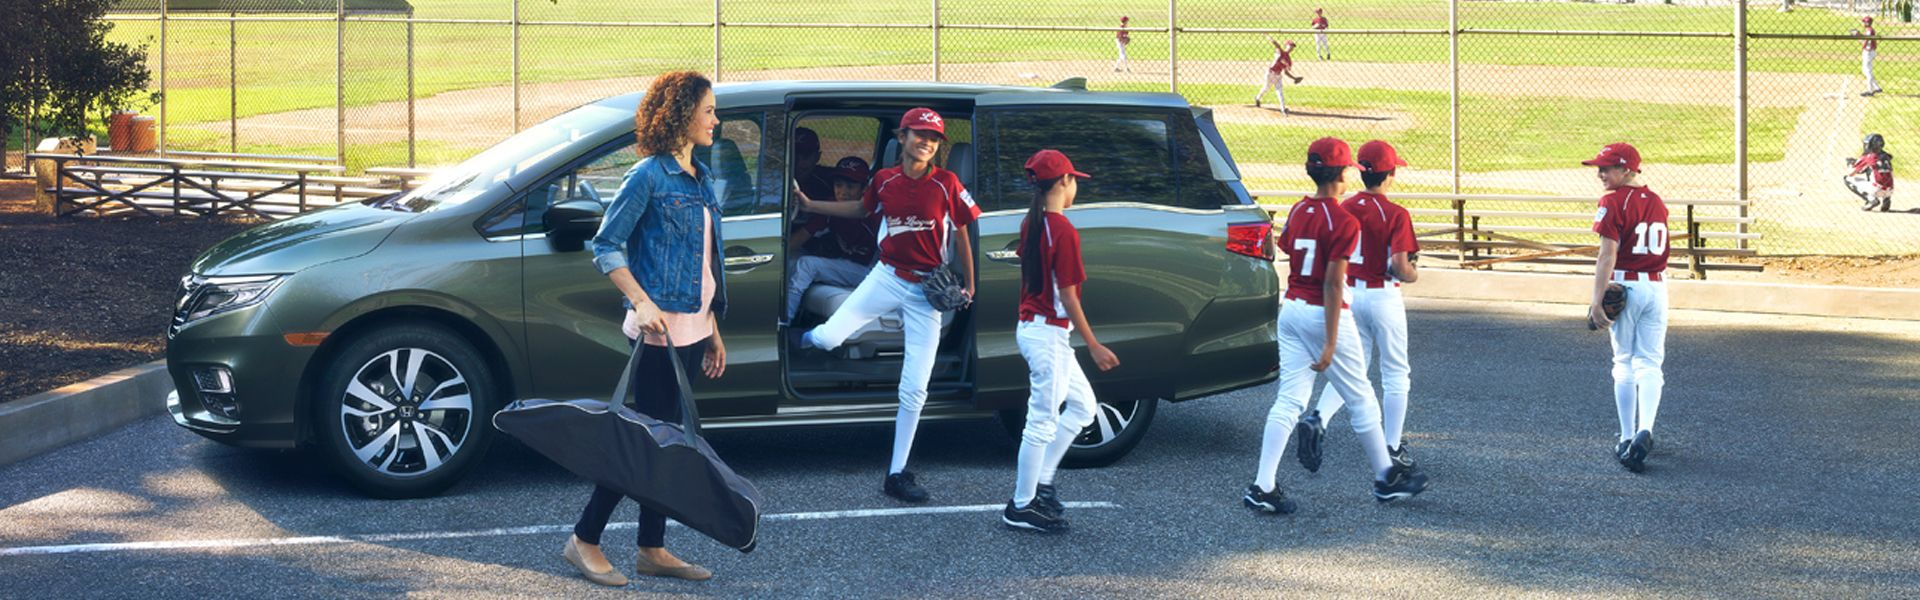 Kids coming out of a green honda odyssey at drew park in jacksonville fl